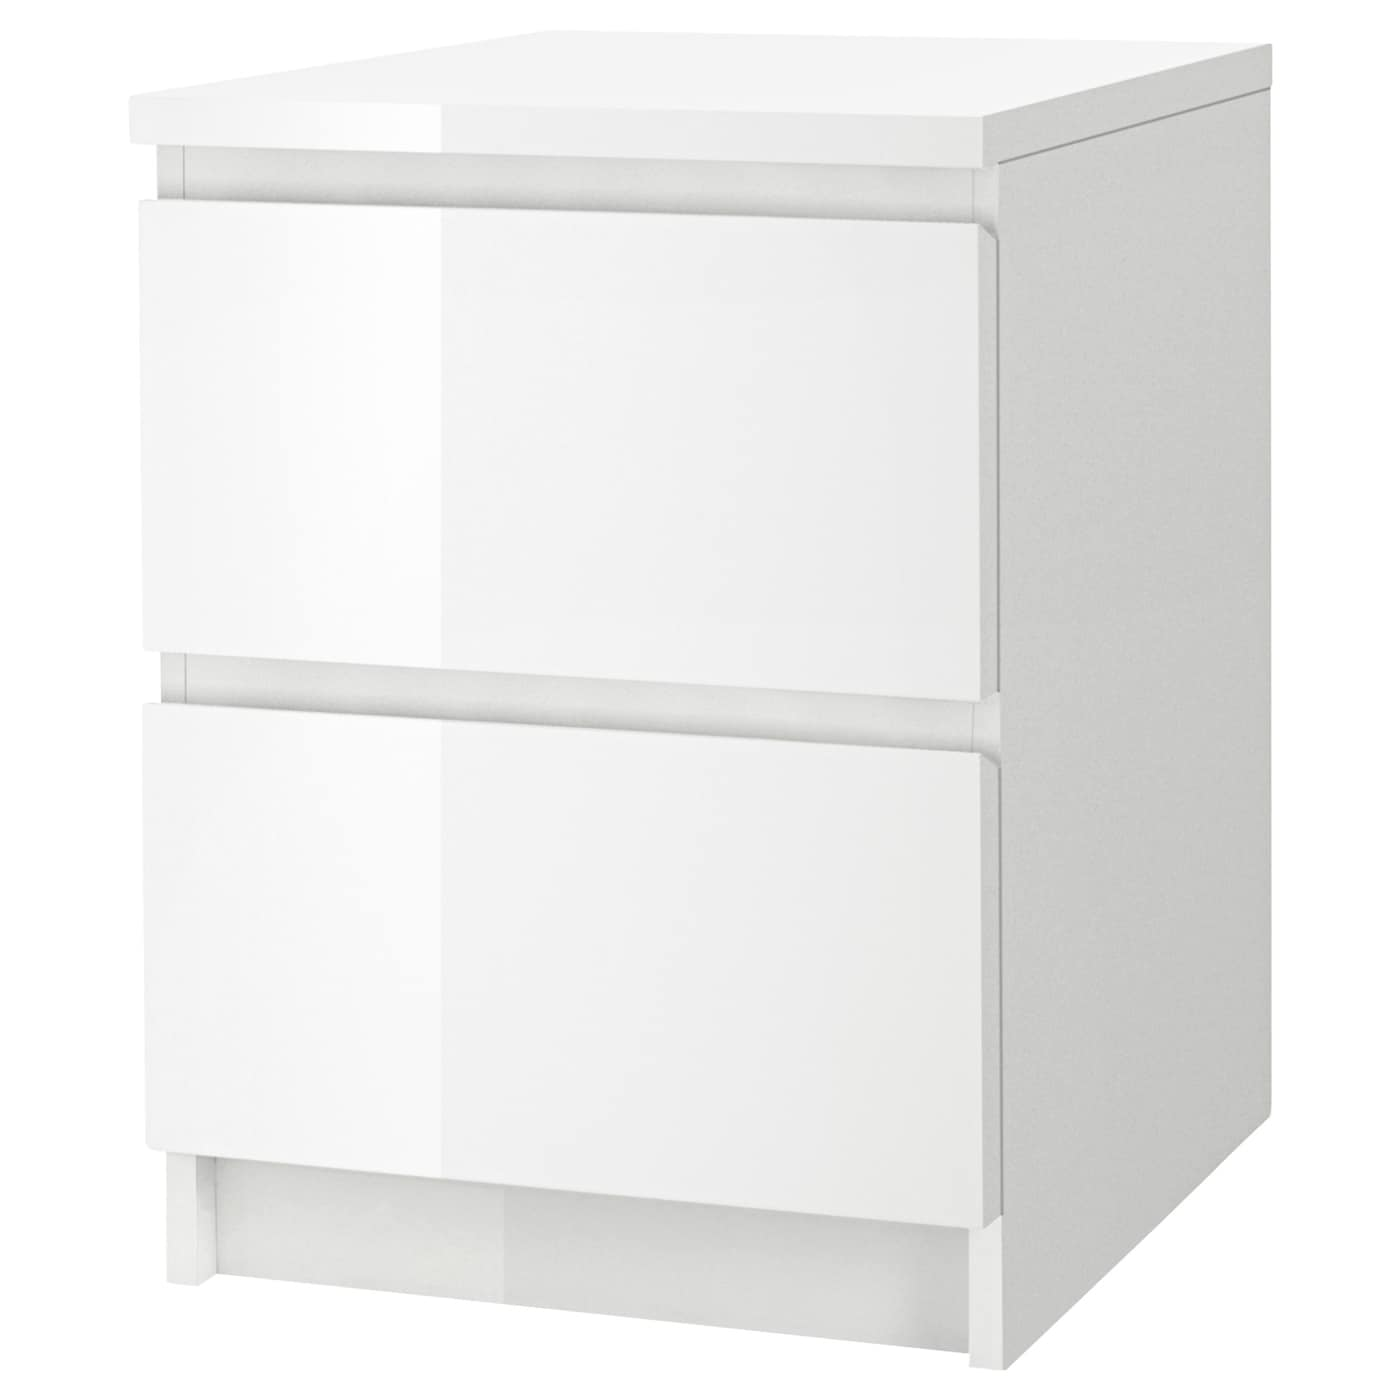 malm chest of 2 drawers white high gloss 40 x 55 cm ikea